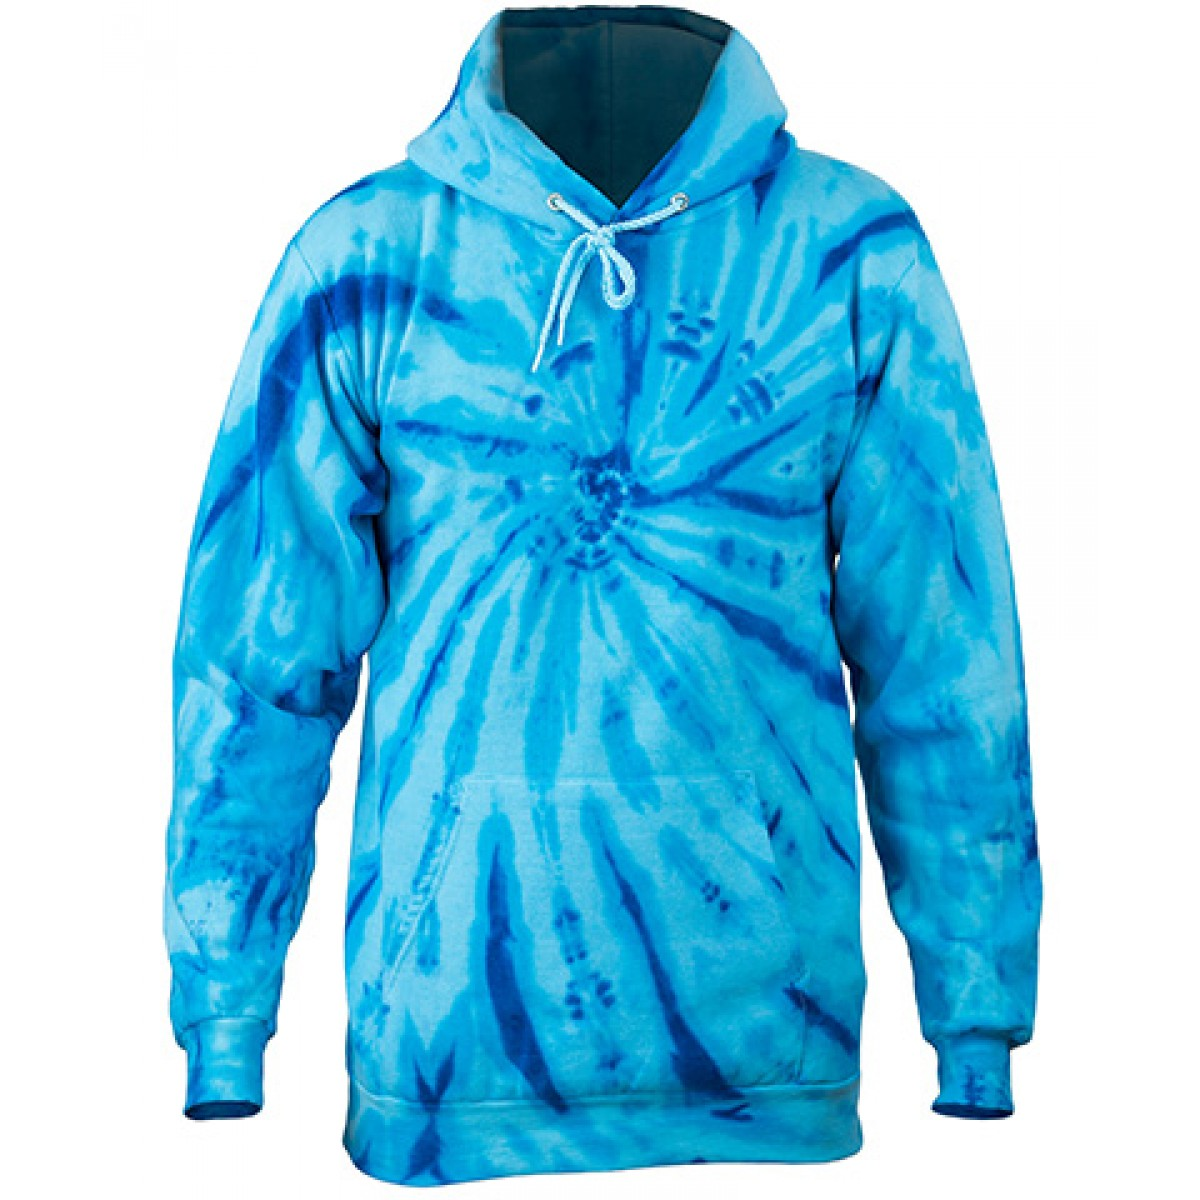 Tie-Dye Pullover Hooded Sweatshirt-Tropic Blue-YL